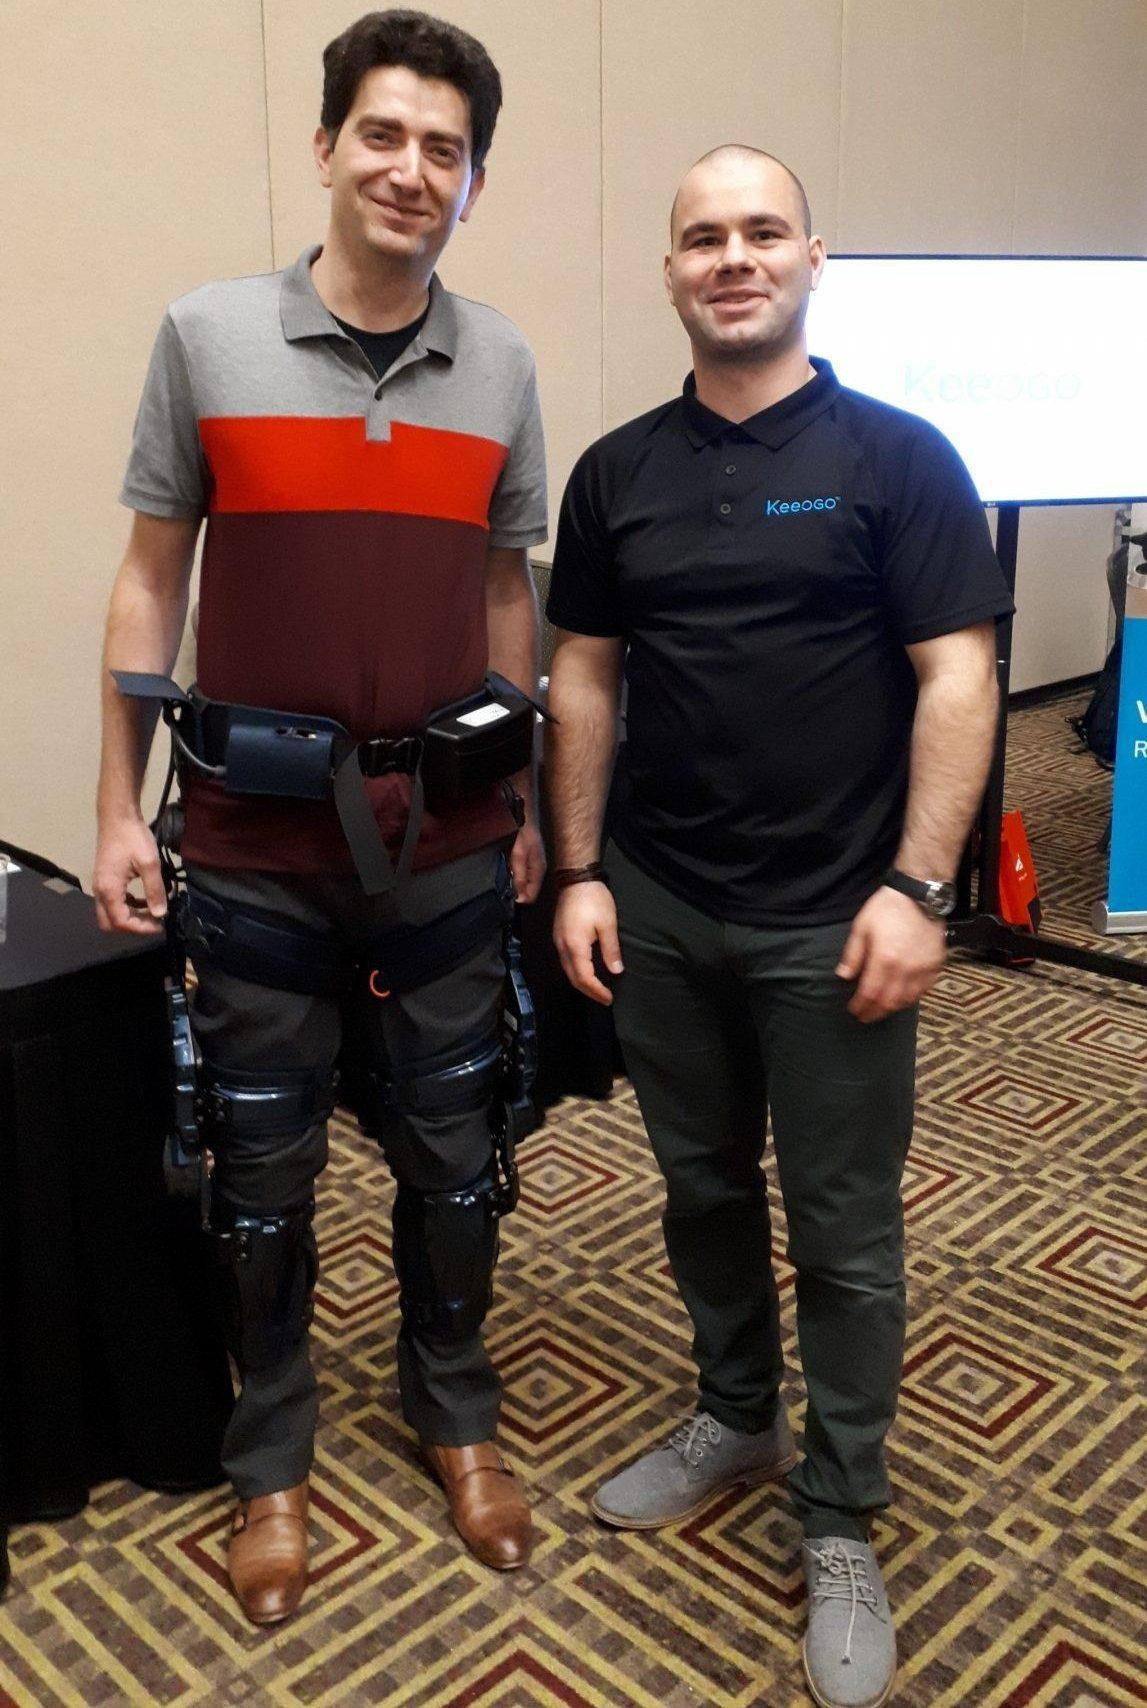 WeaRAcon 2019, the wearable robotics show in Arizona